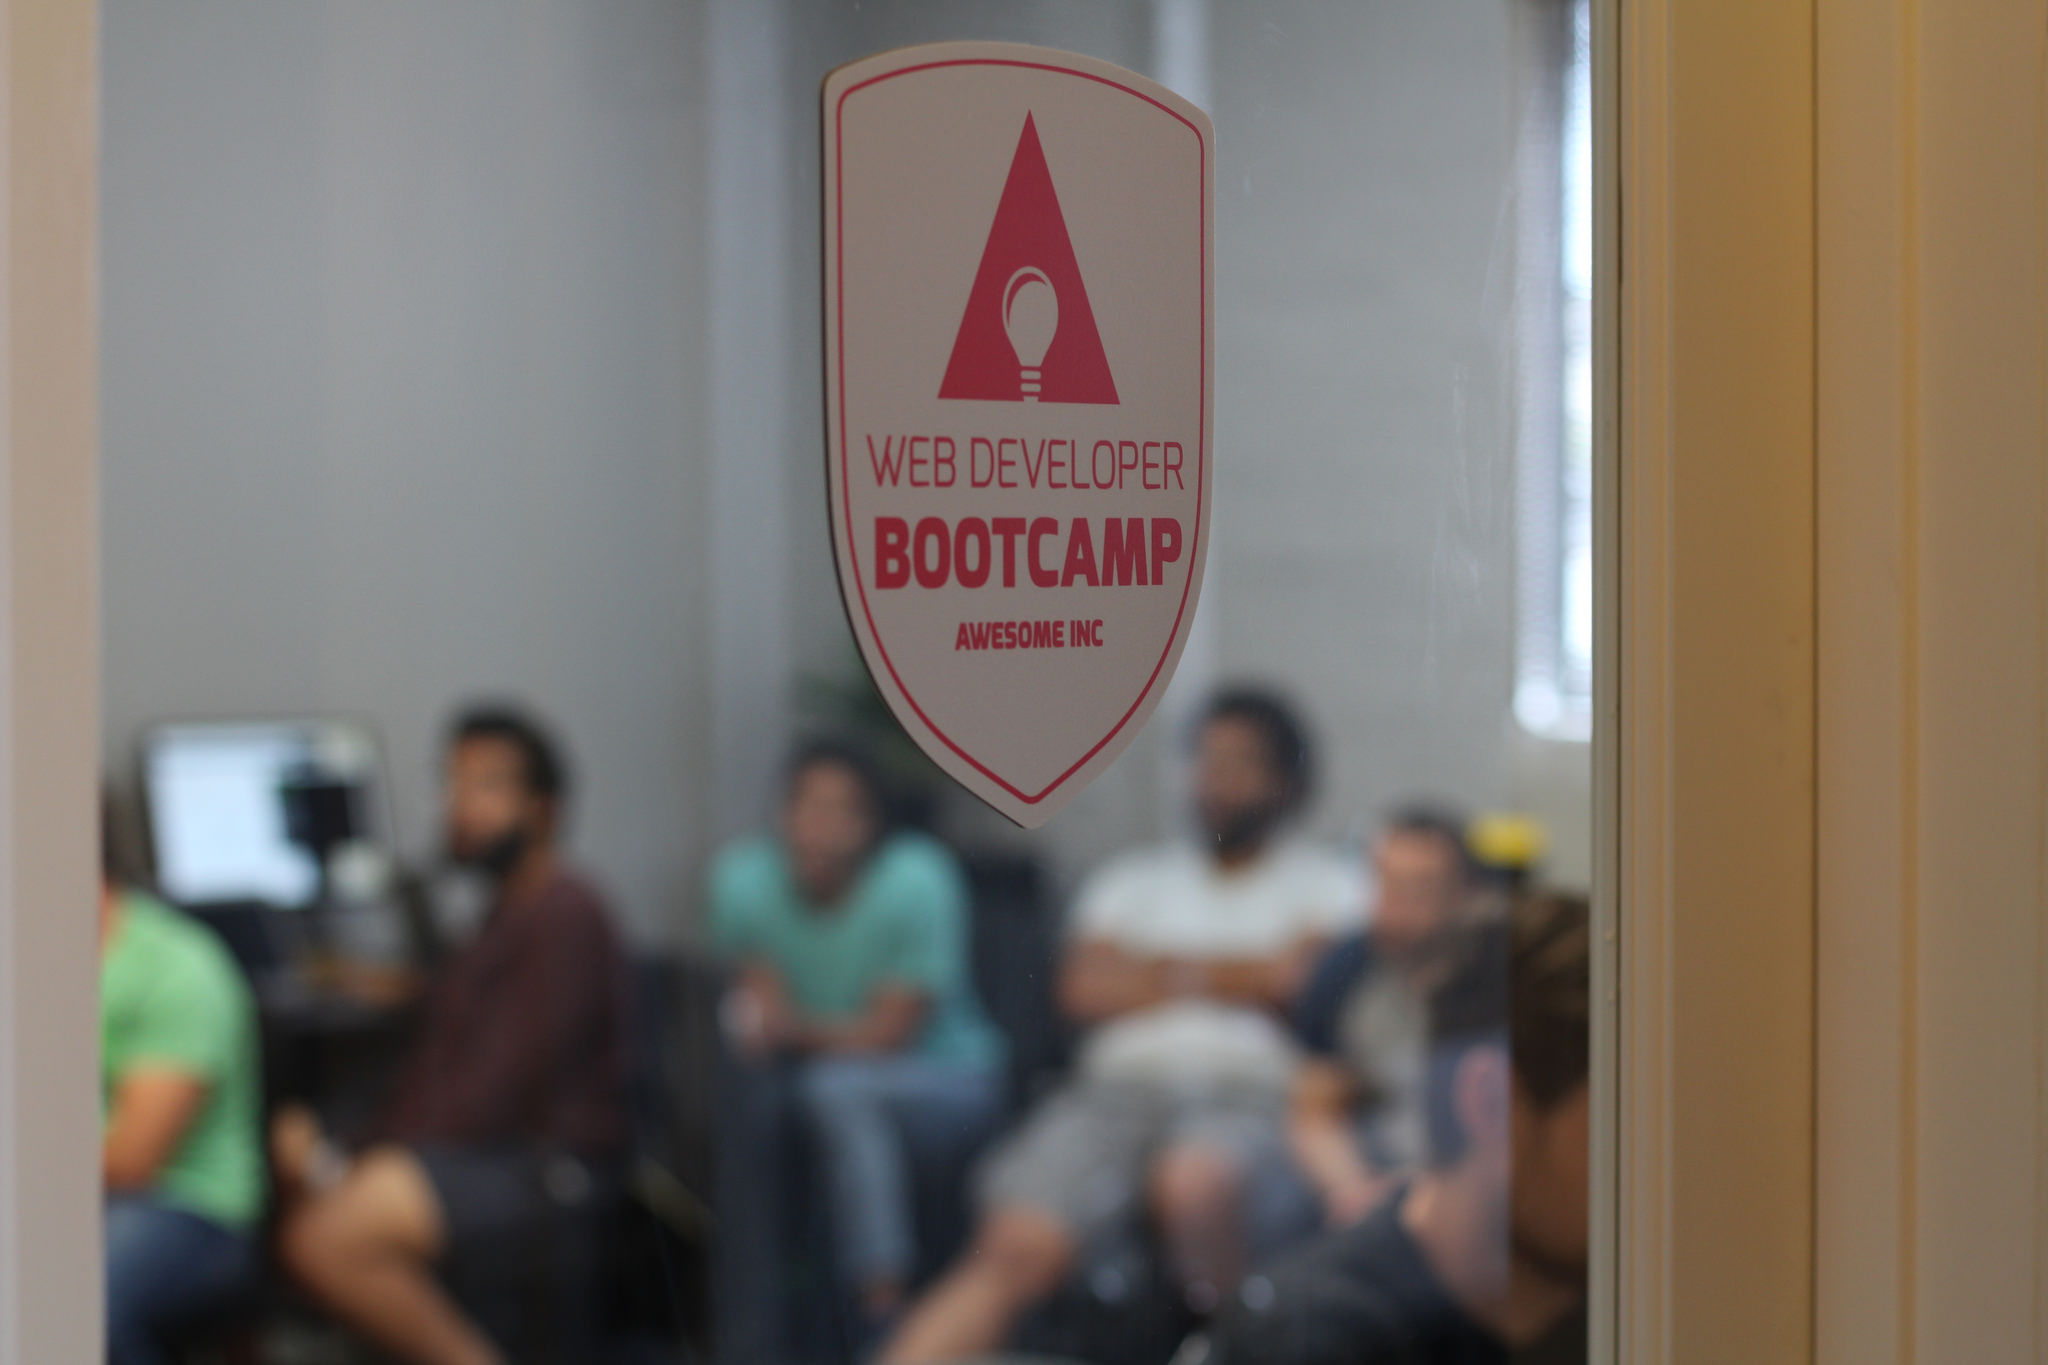 Awesome Inc Bootcamp classroom doorway